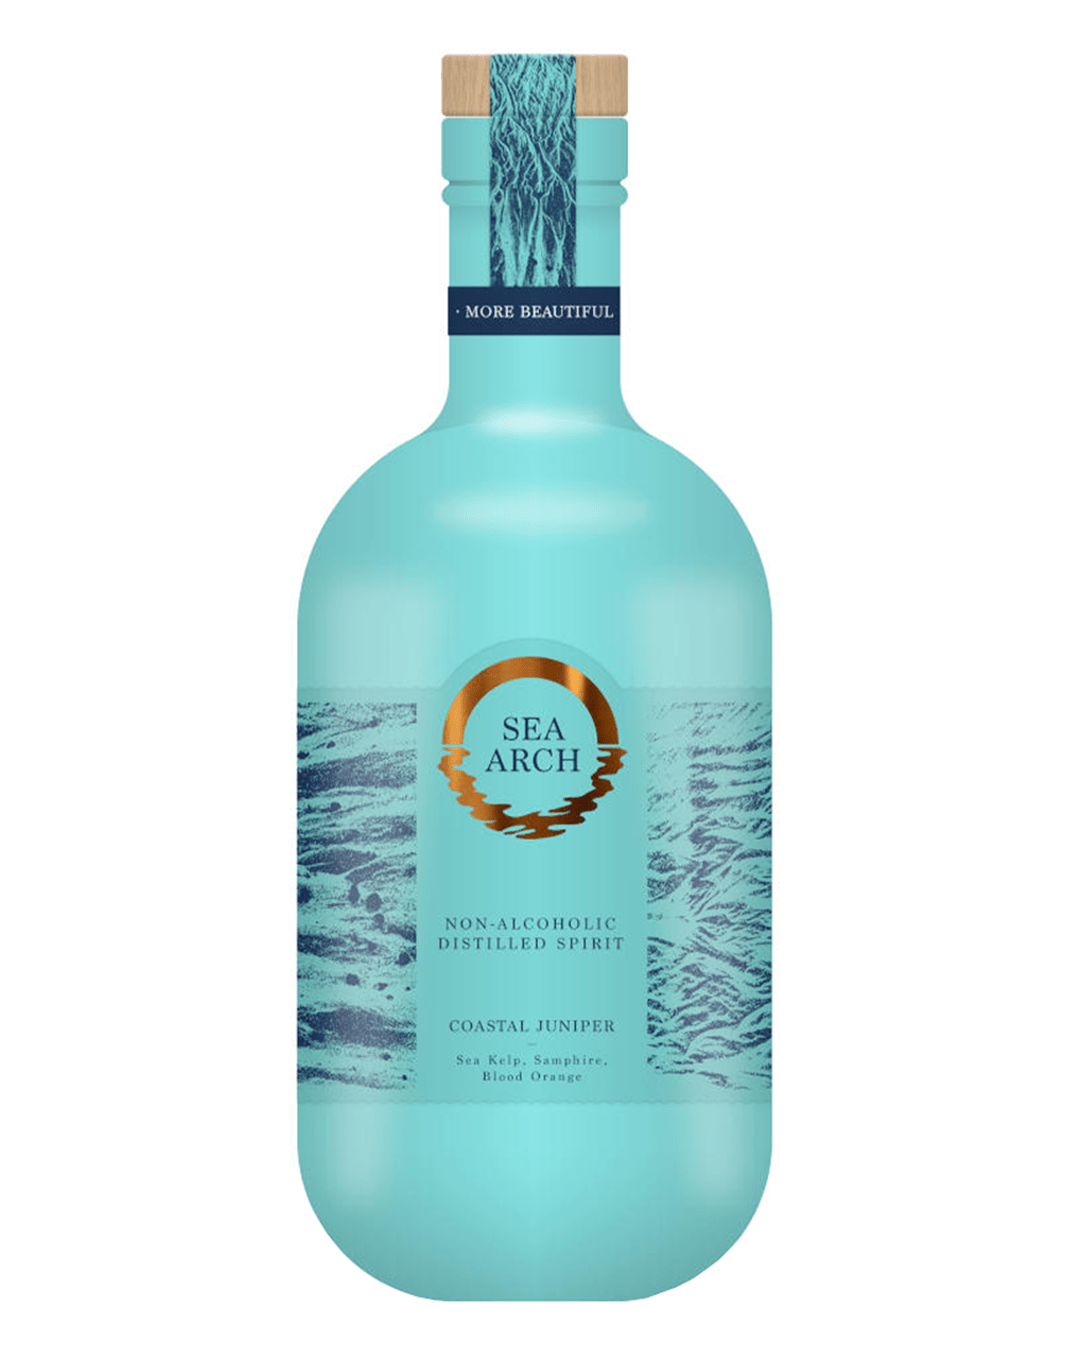 Sea Arch Non Alcoholic Distilled Spirit, 70cl